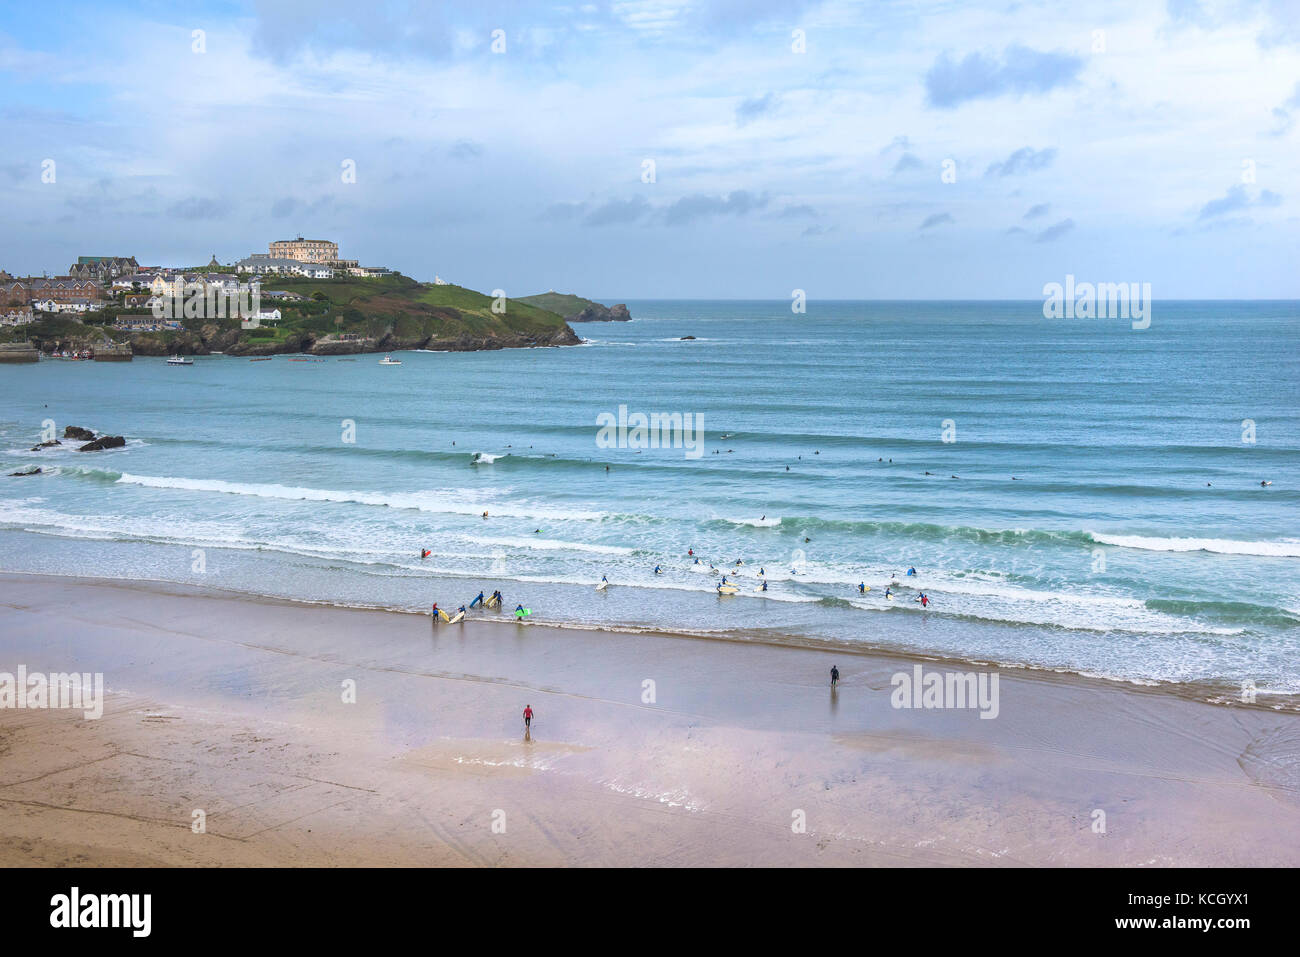 Surfing in Cornwall - surfing activity on Great Western Beach in Newquay, Cornwall. - Stock Image